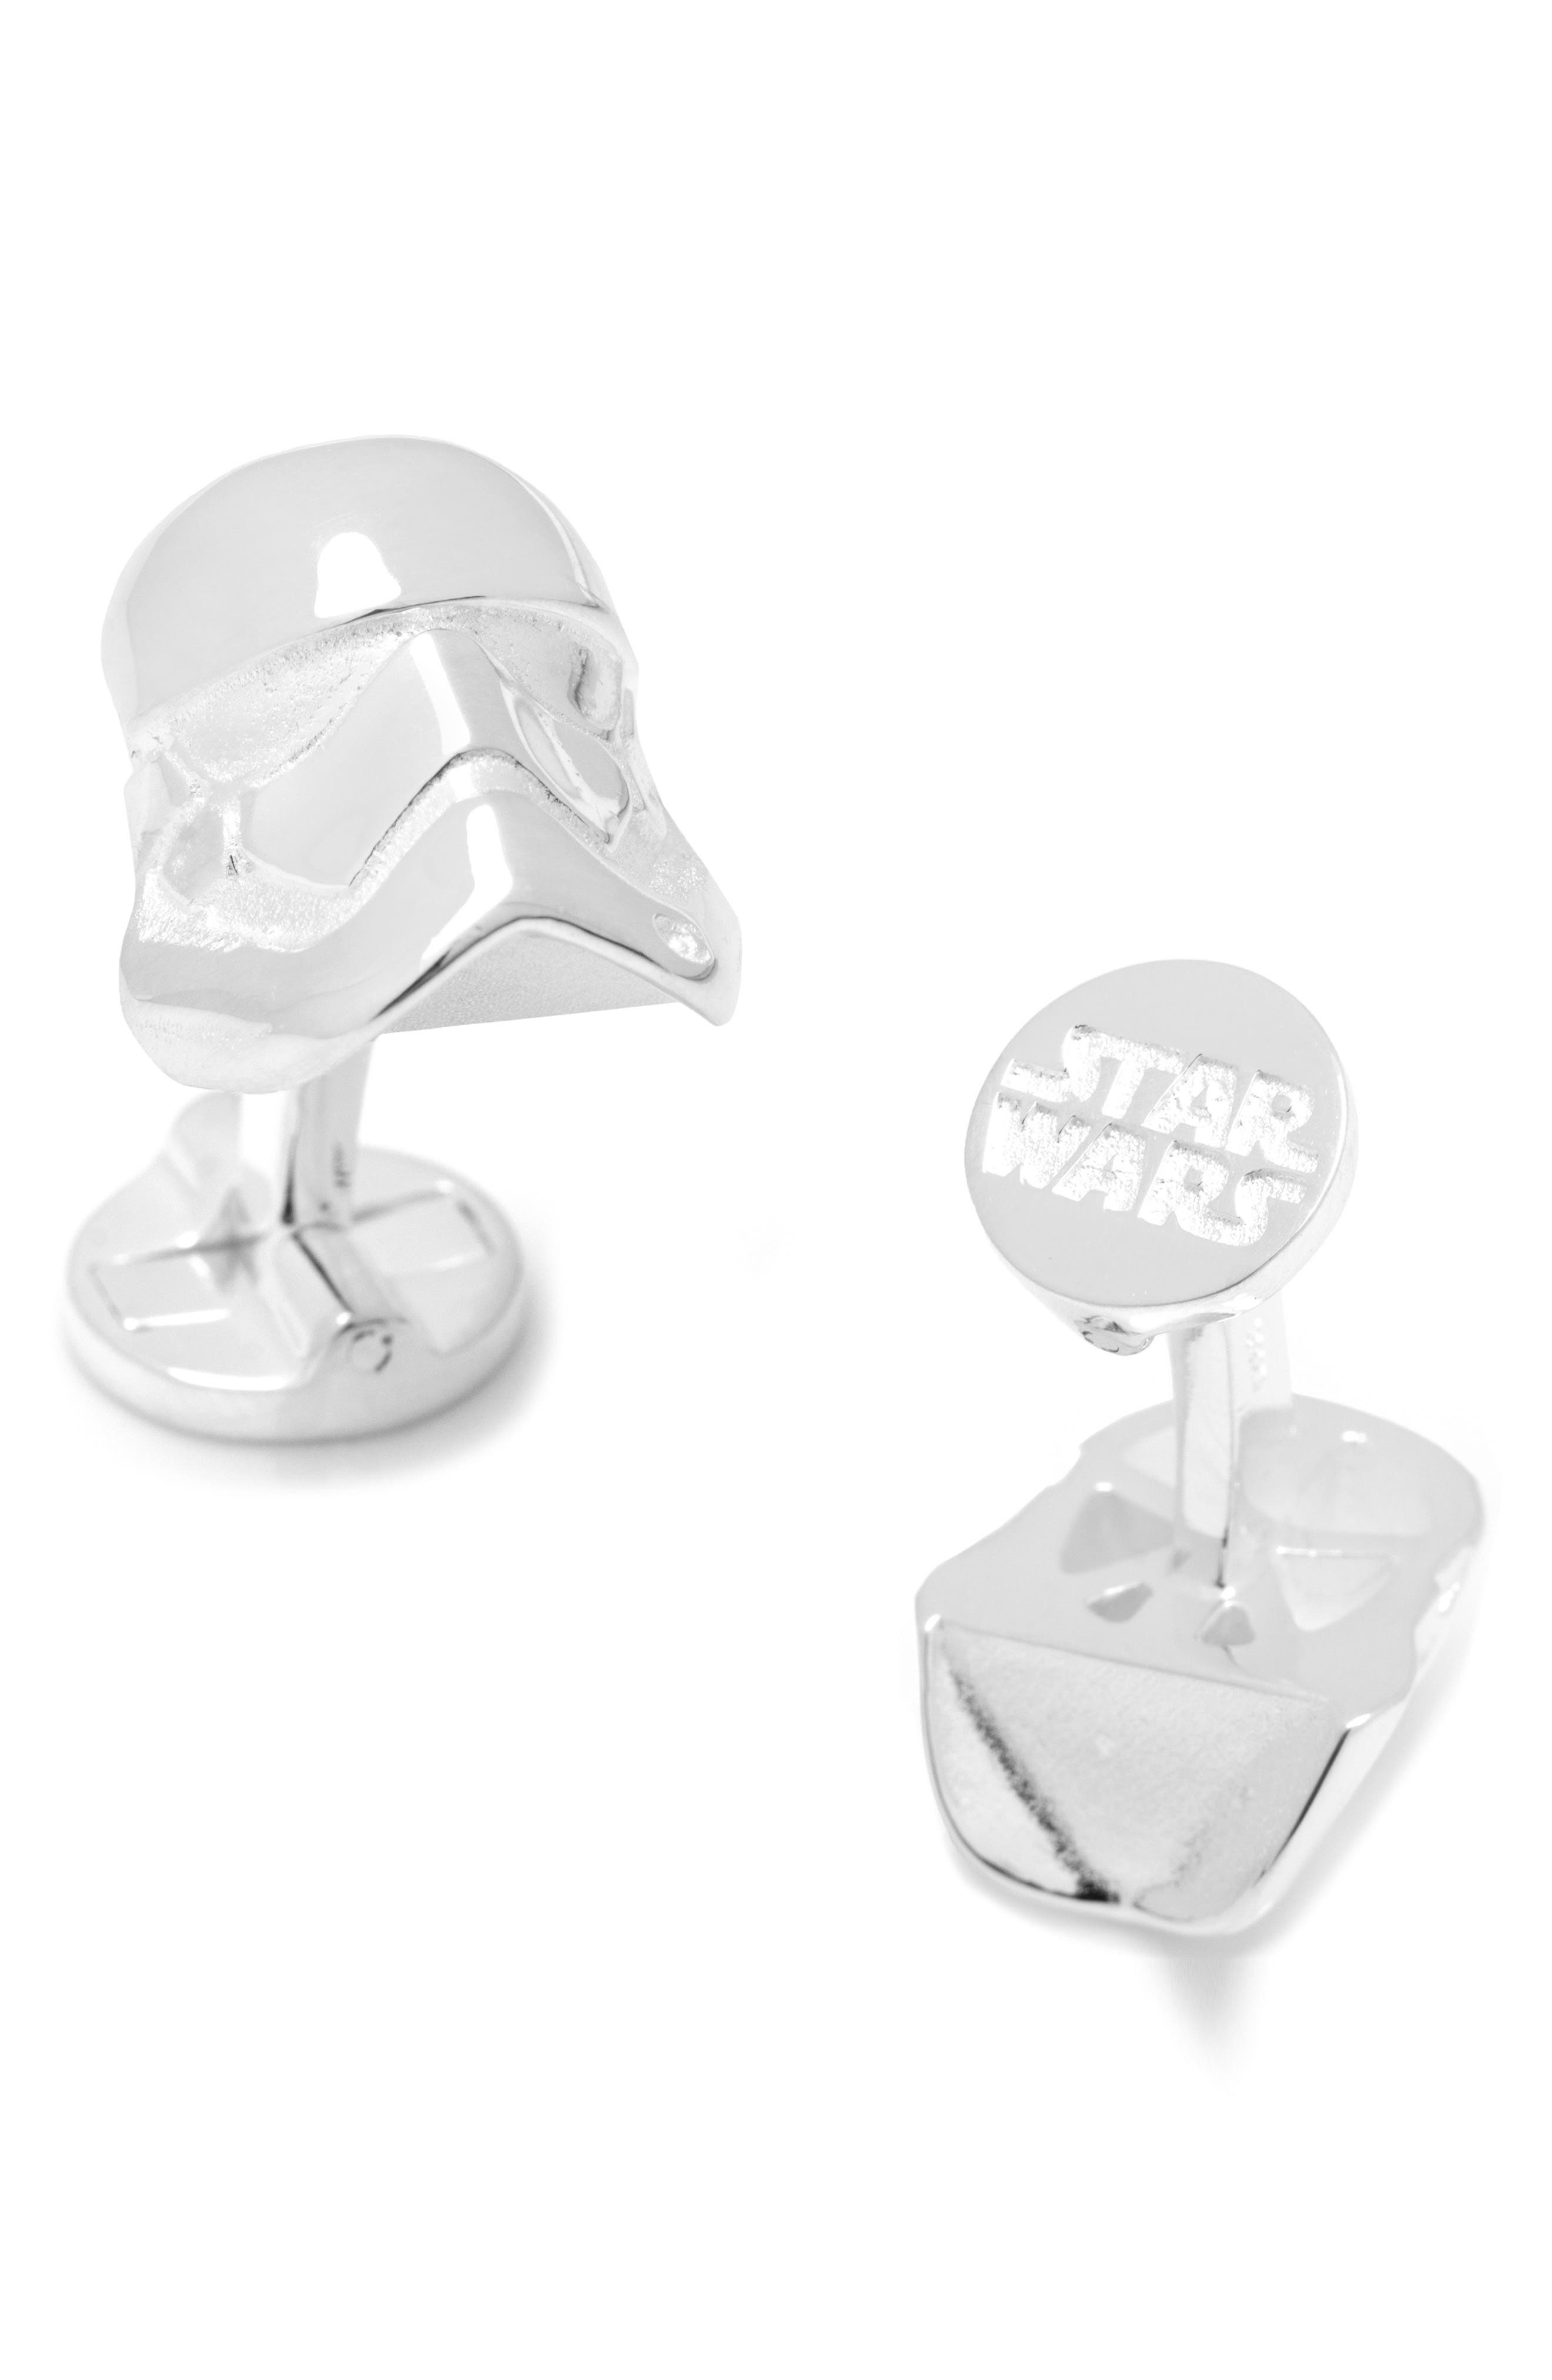 Star Wars<sup>™</sup> Stormtrooper Cuff Links,                         Main,                         color, 040